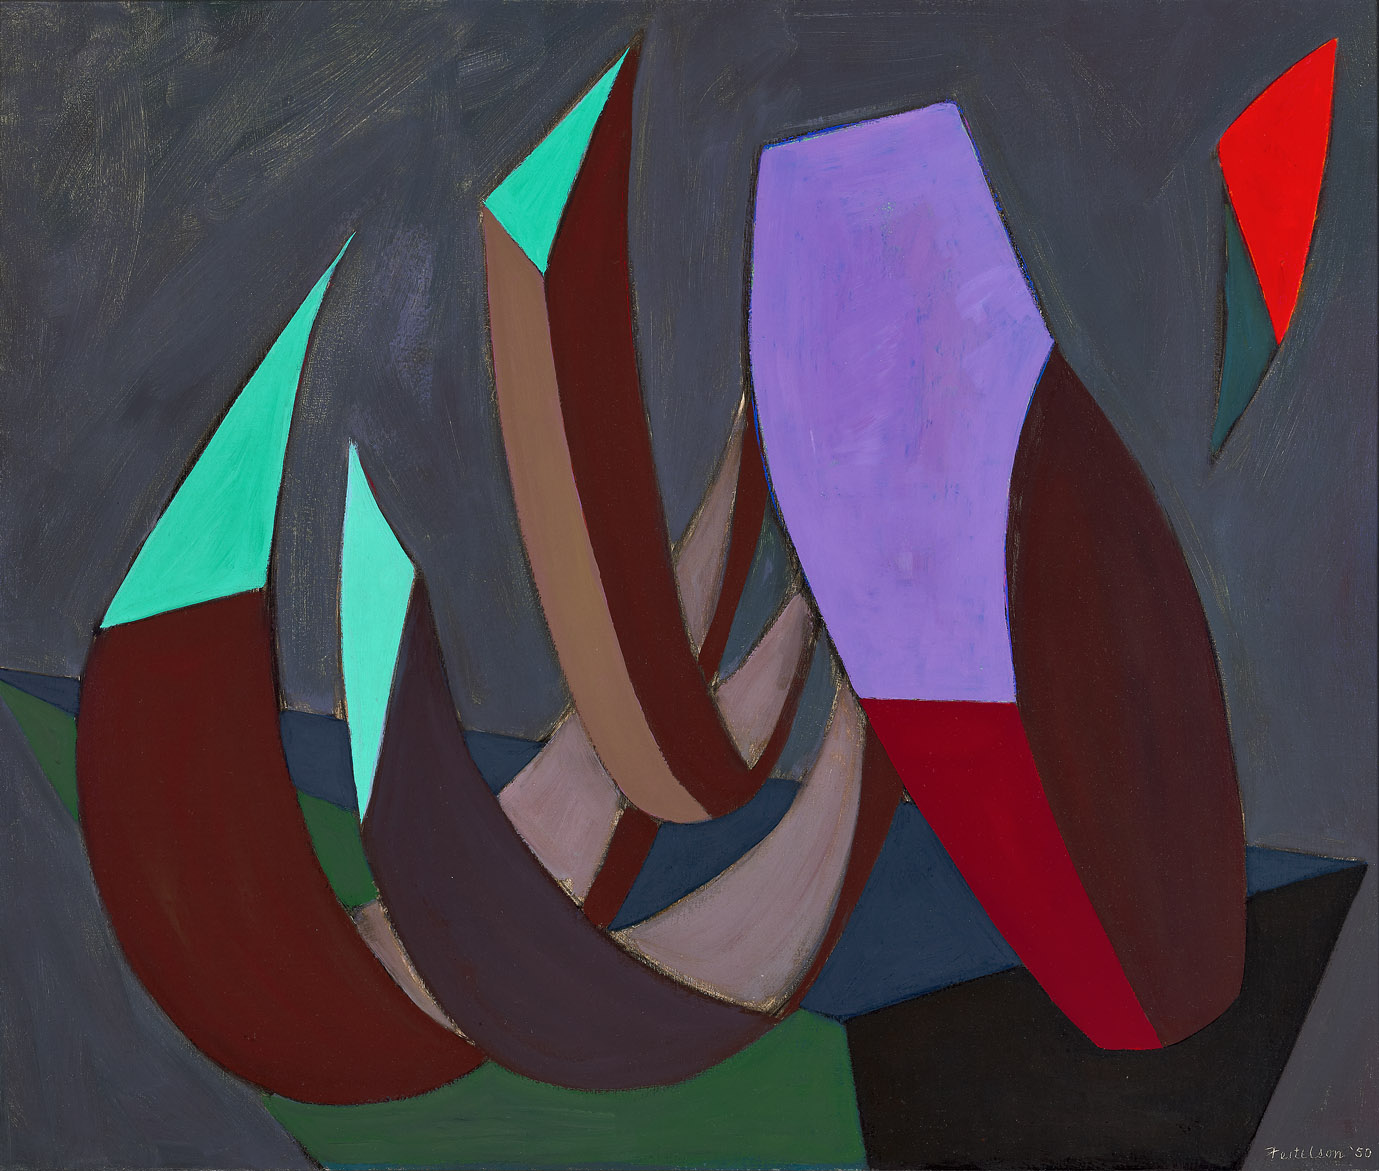 Mirabilia #24 , 1950  oil on canvas 30 x 36 inches; 76.2 x 91.4 centimeters